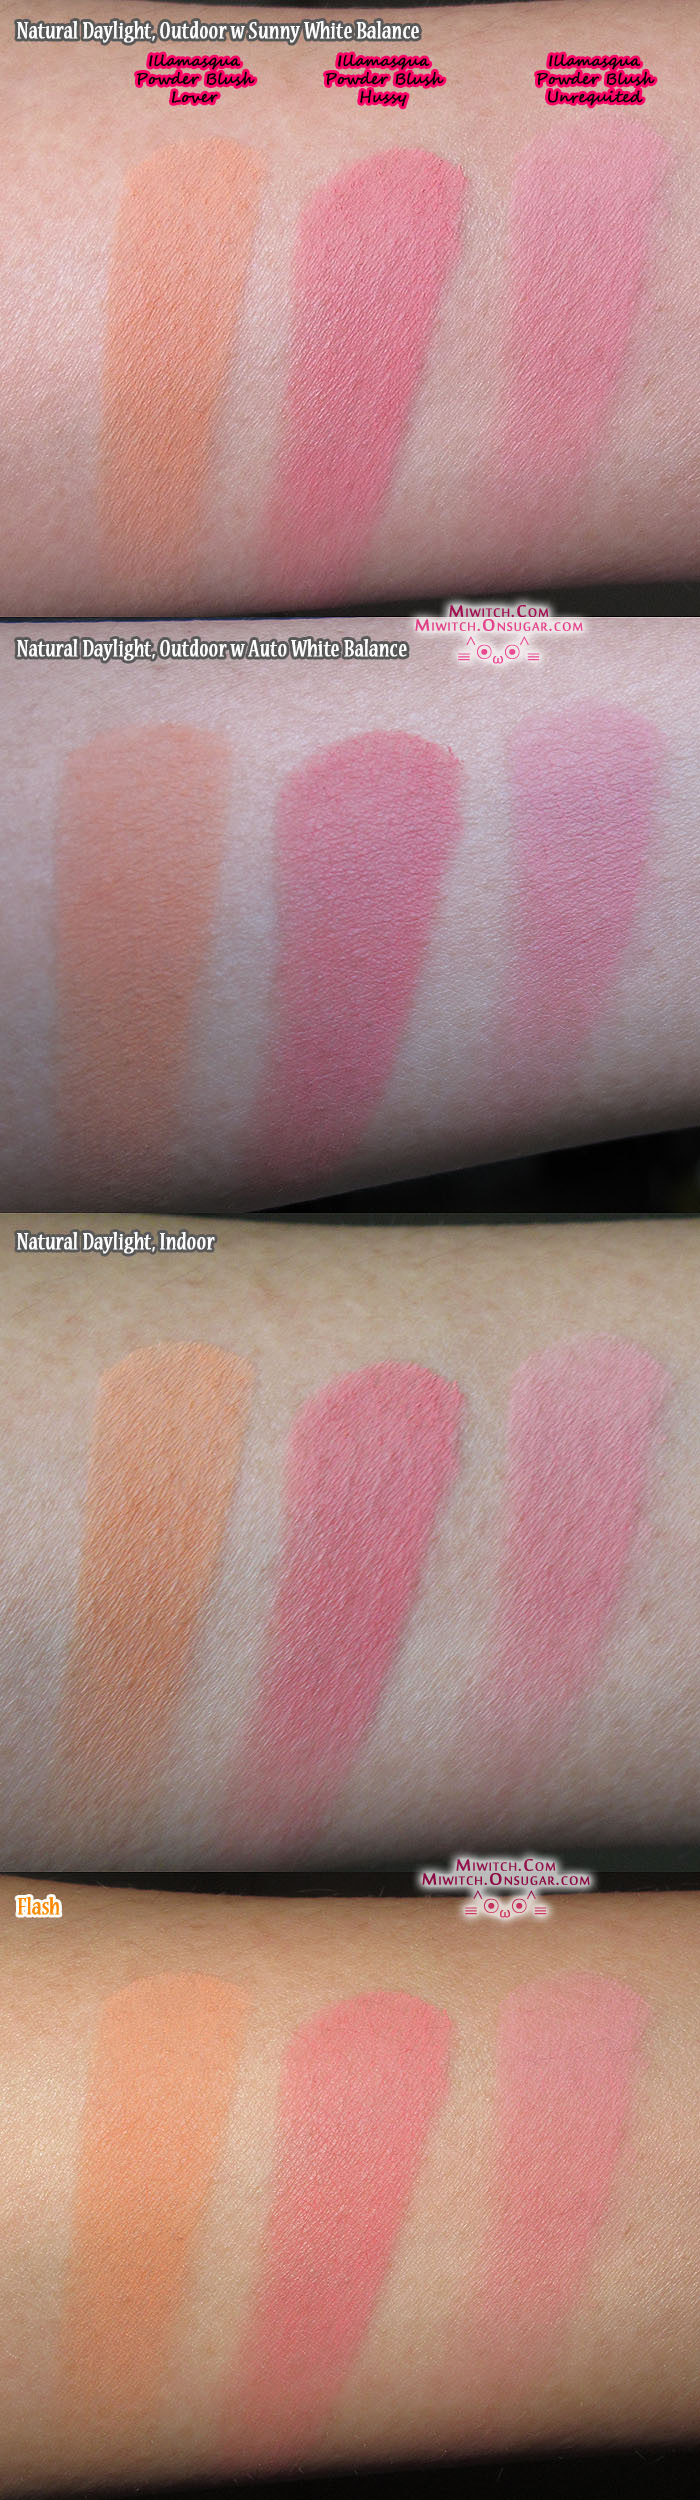 Miwitch Review Swatches Illamasqua Powder Blusher Lover Hussy Vs Unrequited Swatch Blusher Reviews